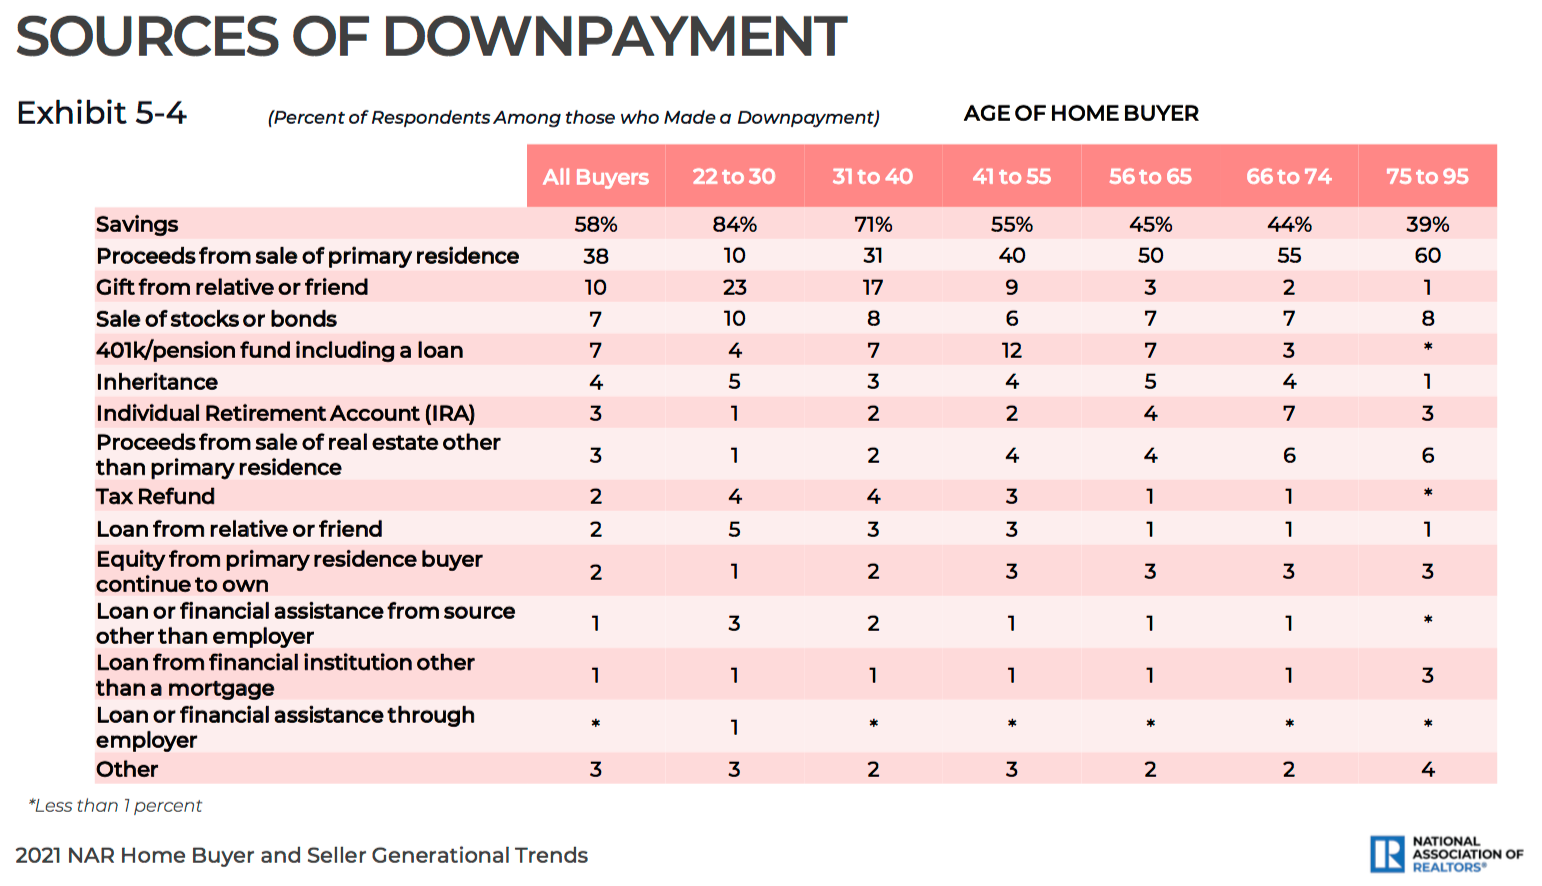 Sources of downpayment by buyer age.